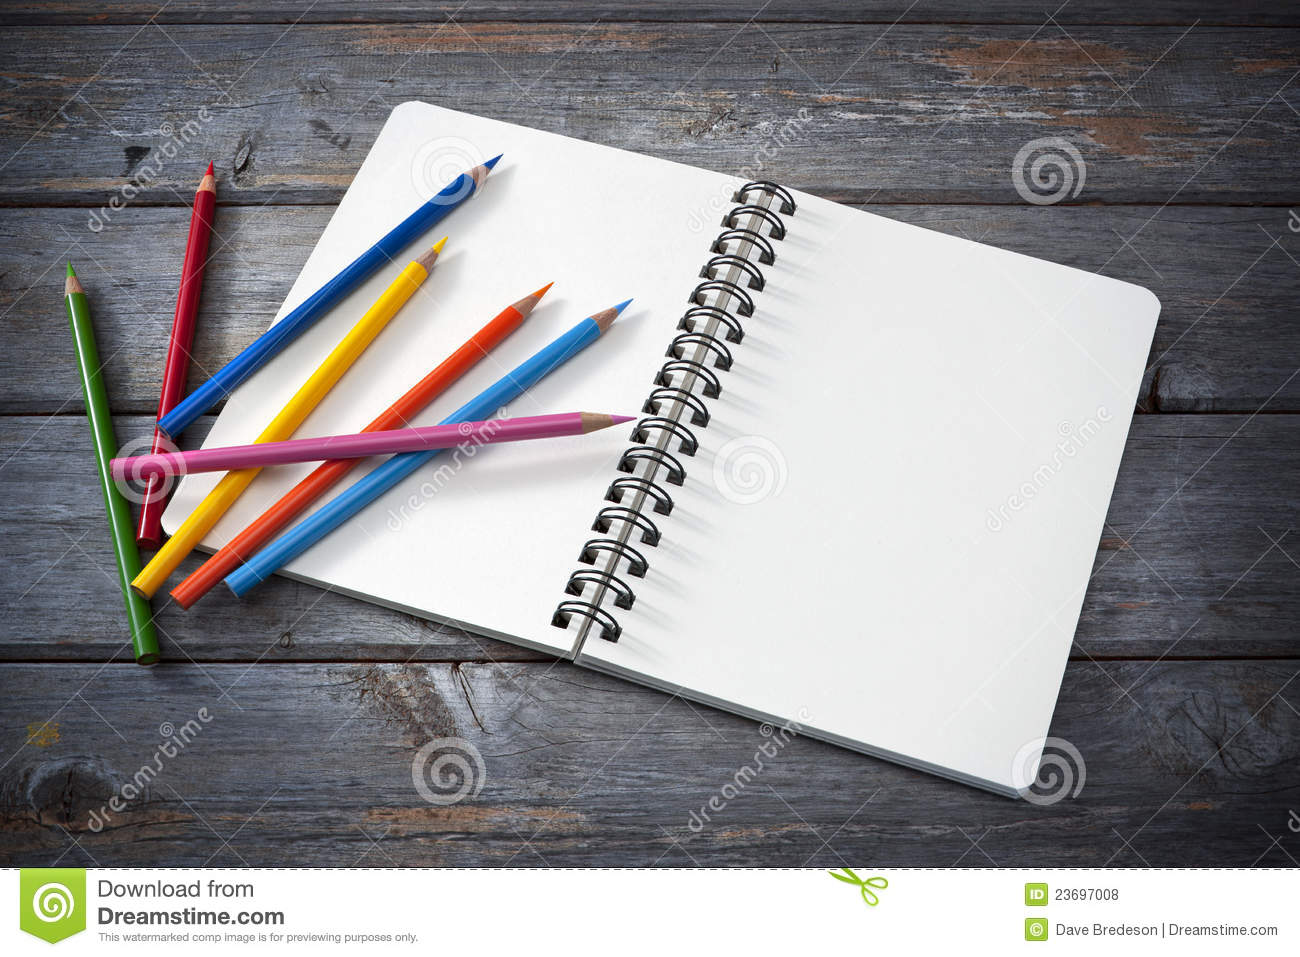 Art Sketchpad Colored Pencils Stock Photo - Image 23697008